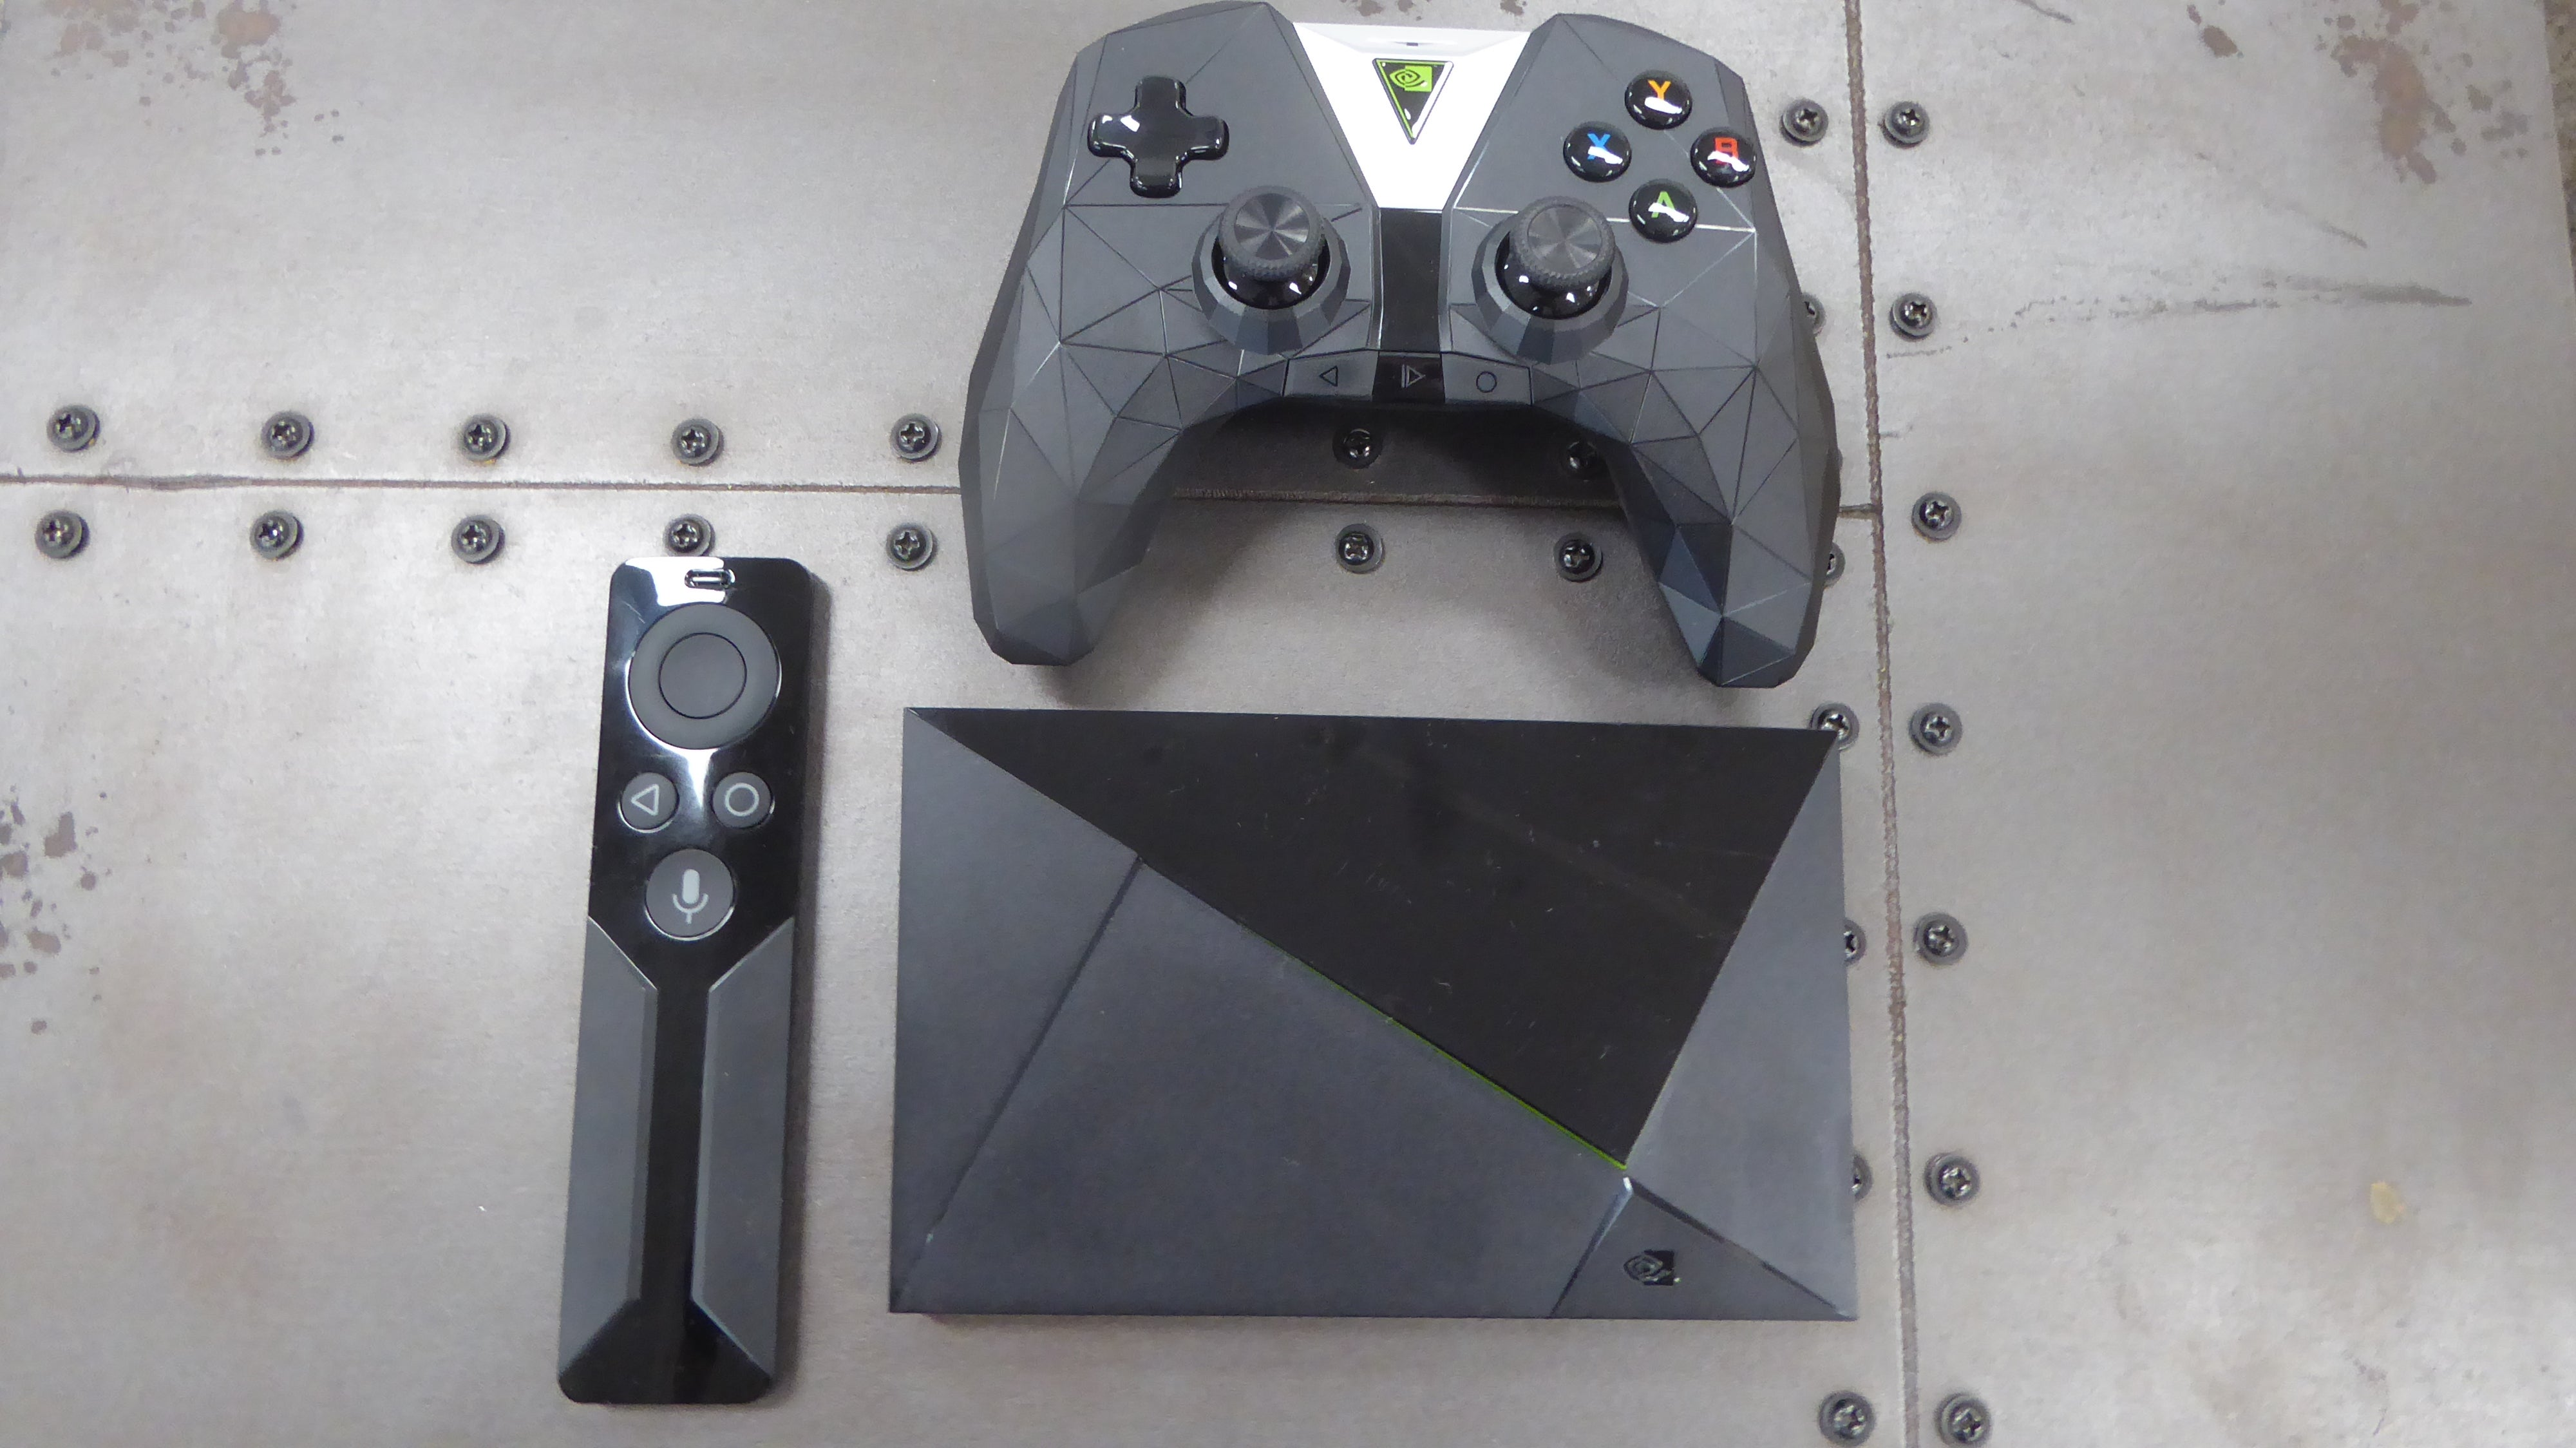 Consolle Nvidia Shield.Nvidia Shield Tv 2019 Review Trusted Reviews